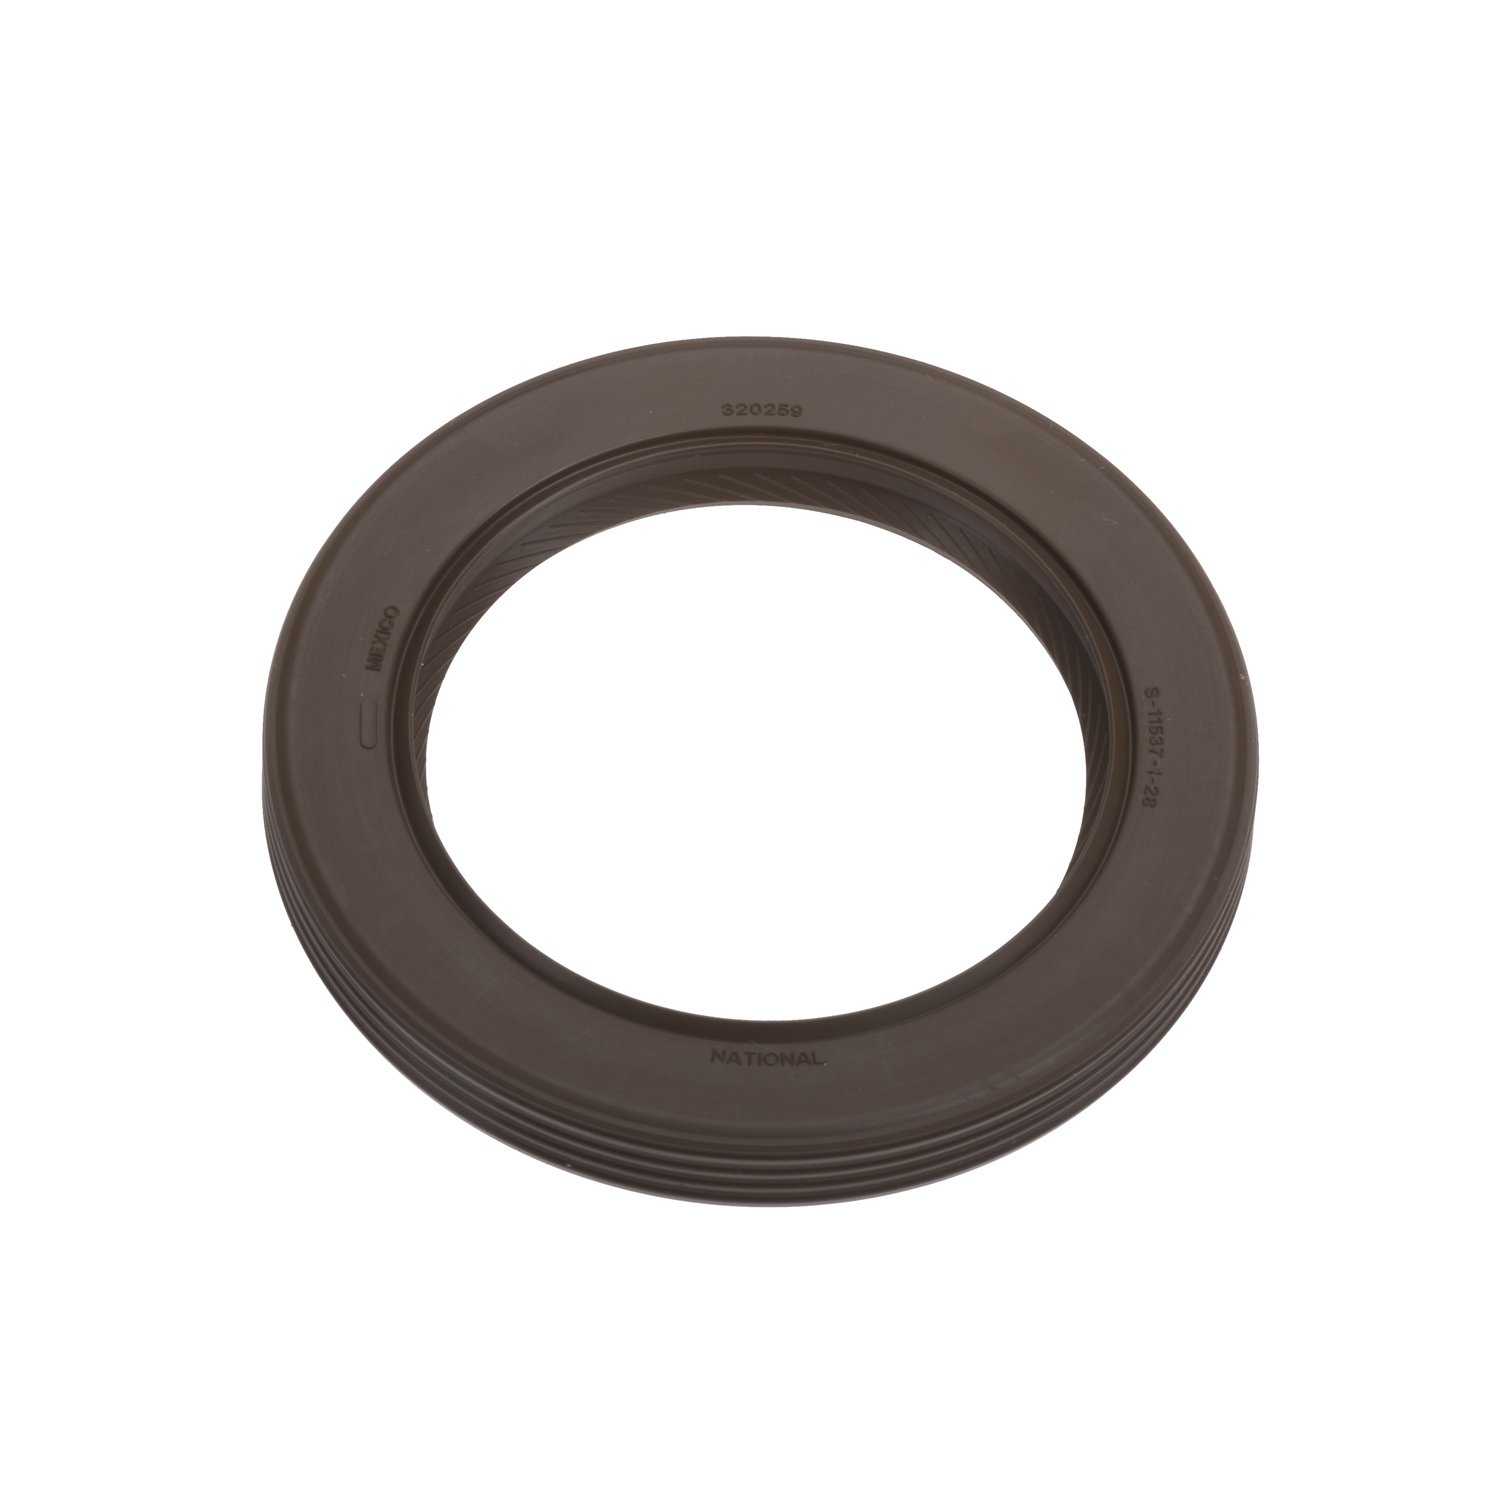 National 320259 Oil Seal